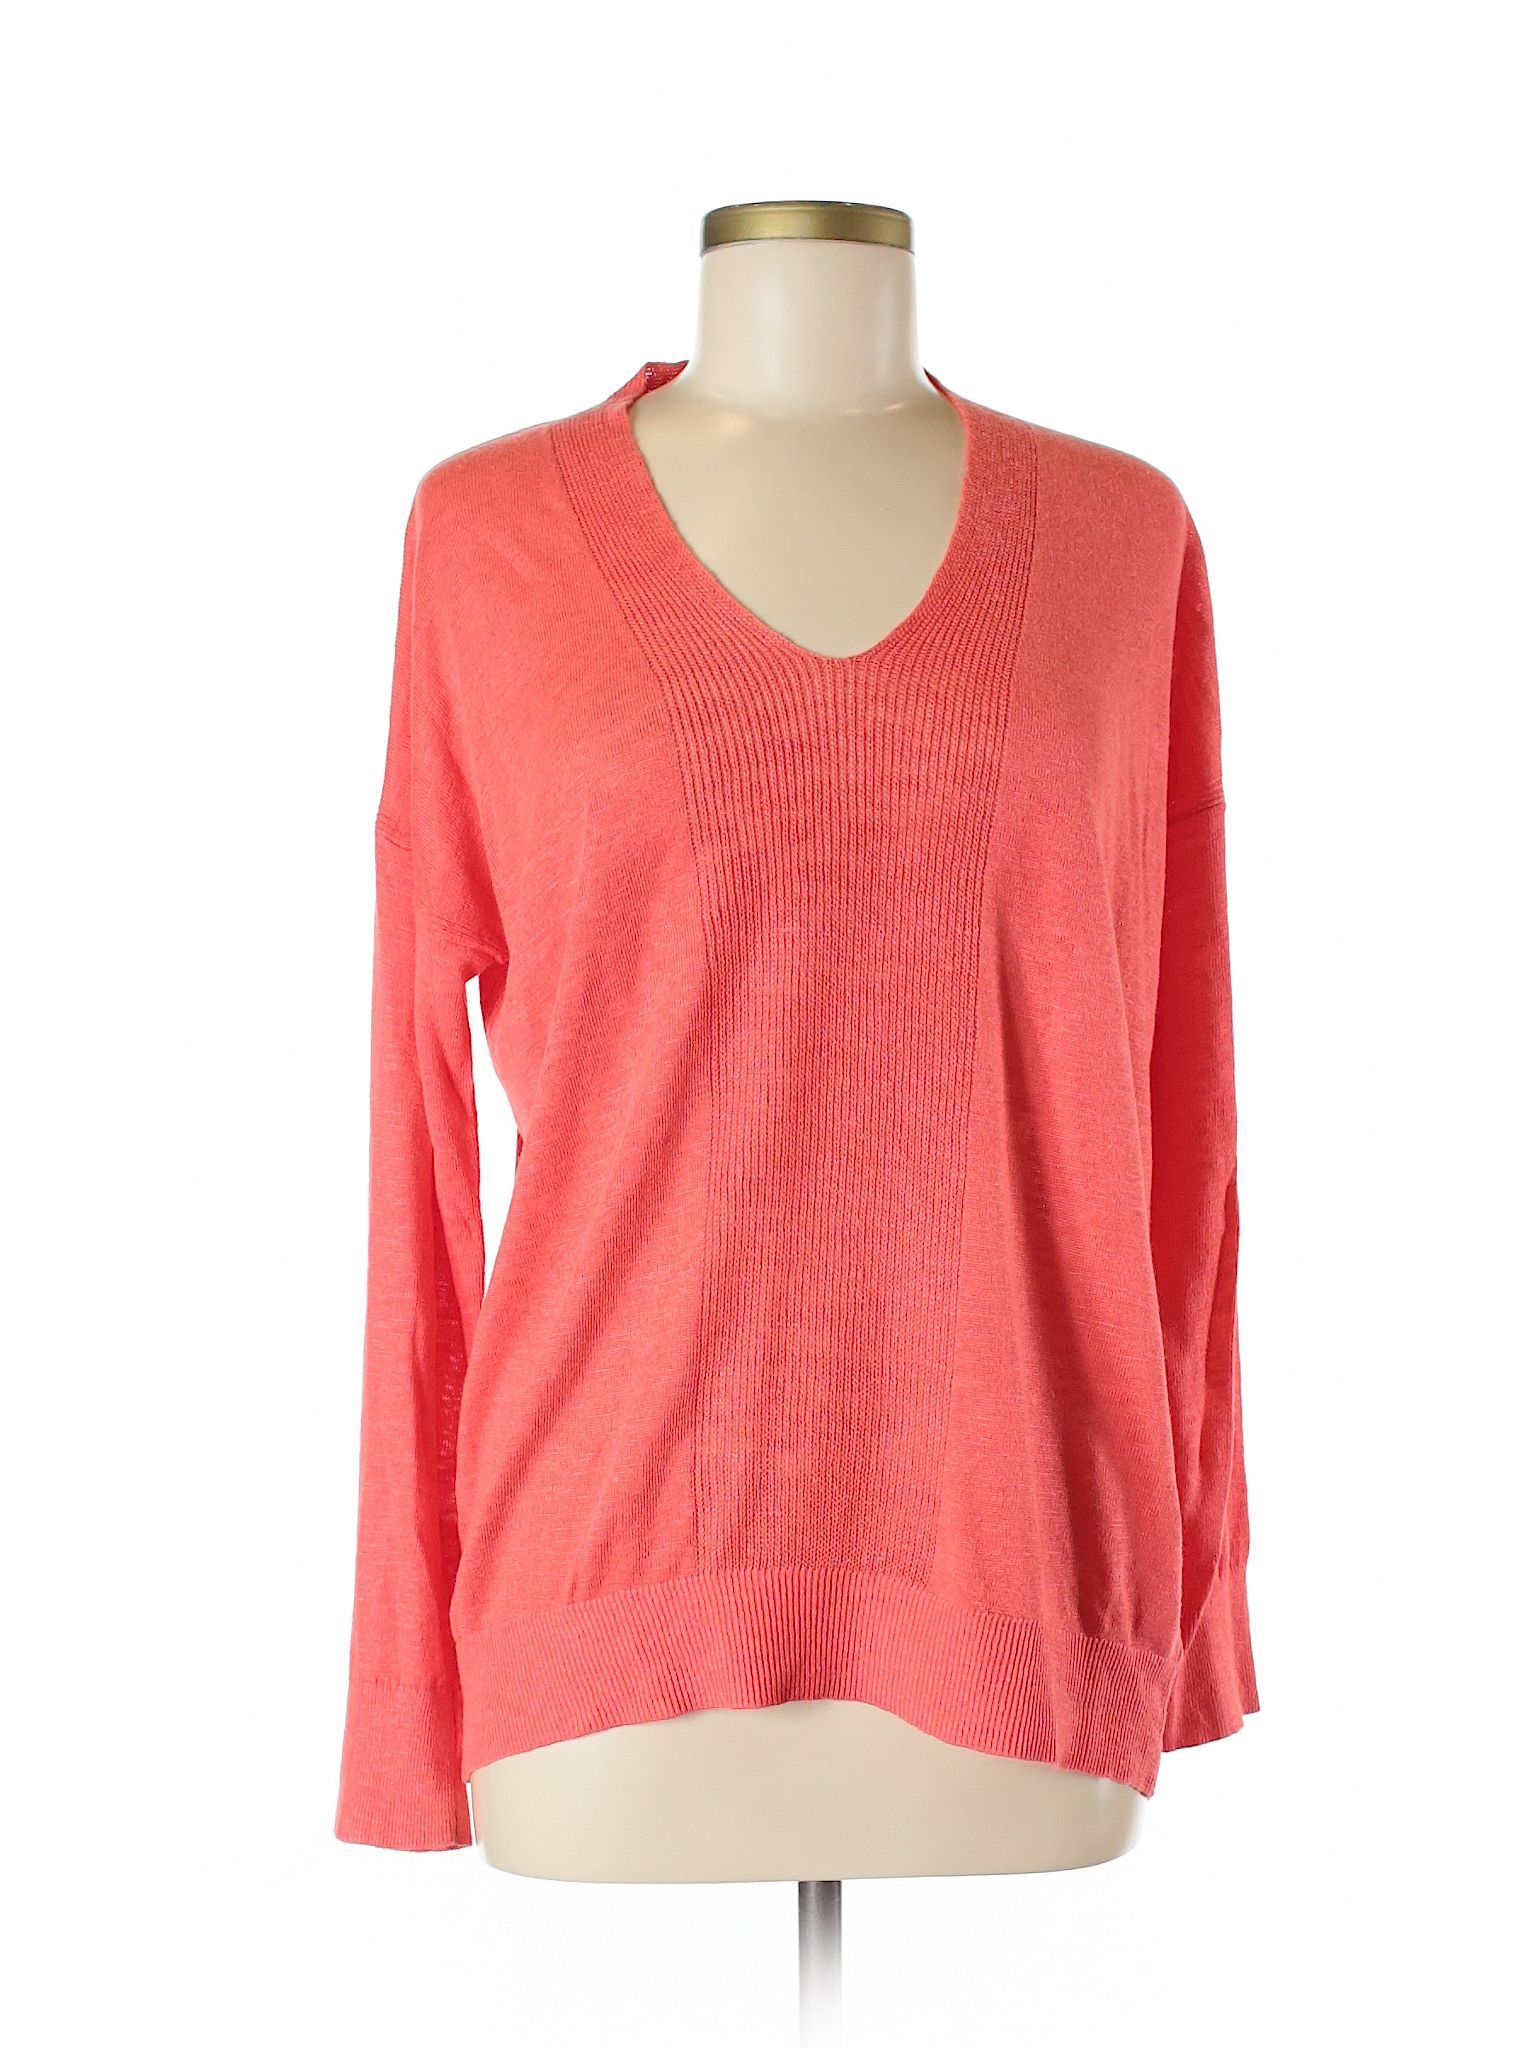 Banana Republic Pullover Sweater Size 800 Coral Womens Tops